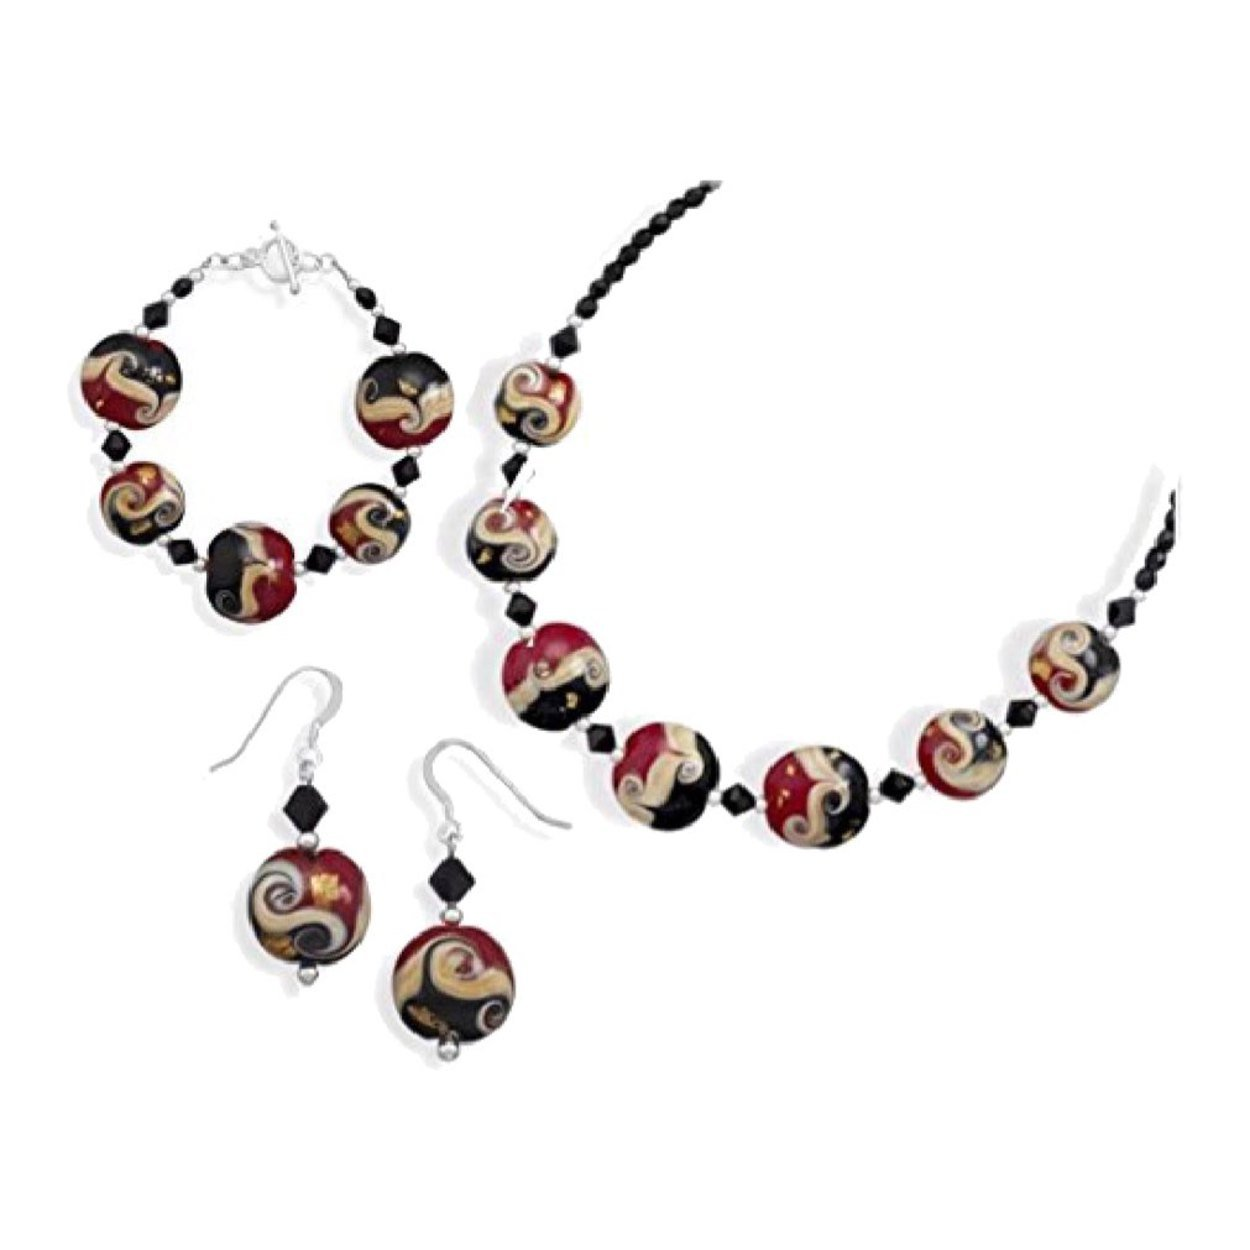 Red Black Venetian Murano Glass Necklace and Bracelet Earring Set 'Perle A Lume' Mother's Day Gift For Her